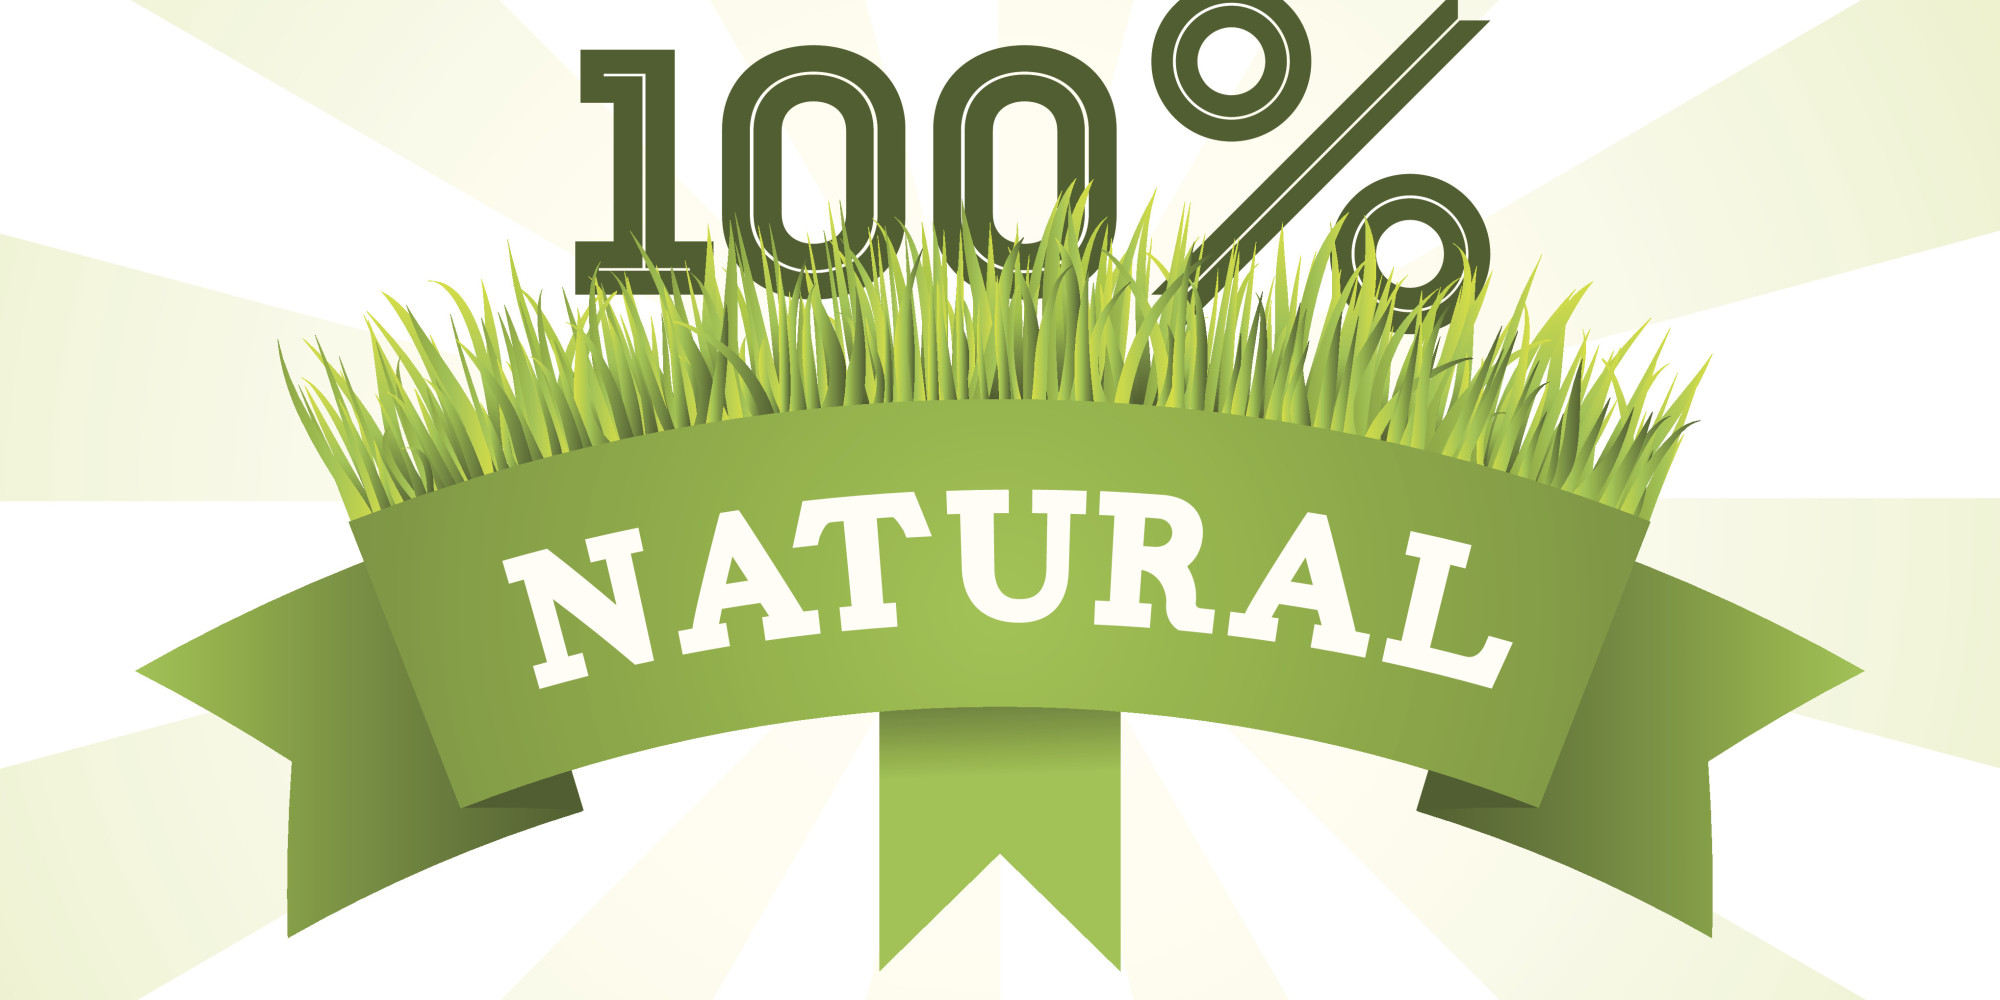 natural food organic food and genetically modified food food